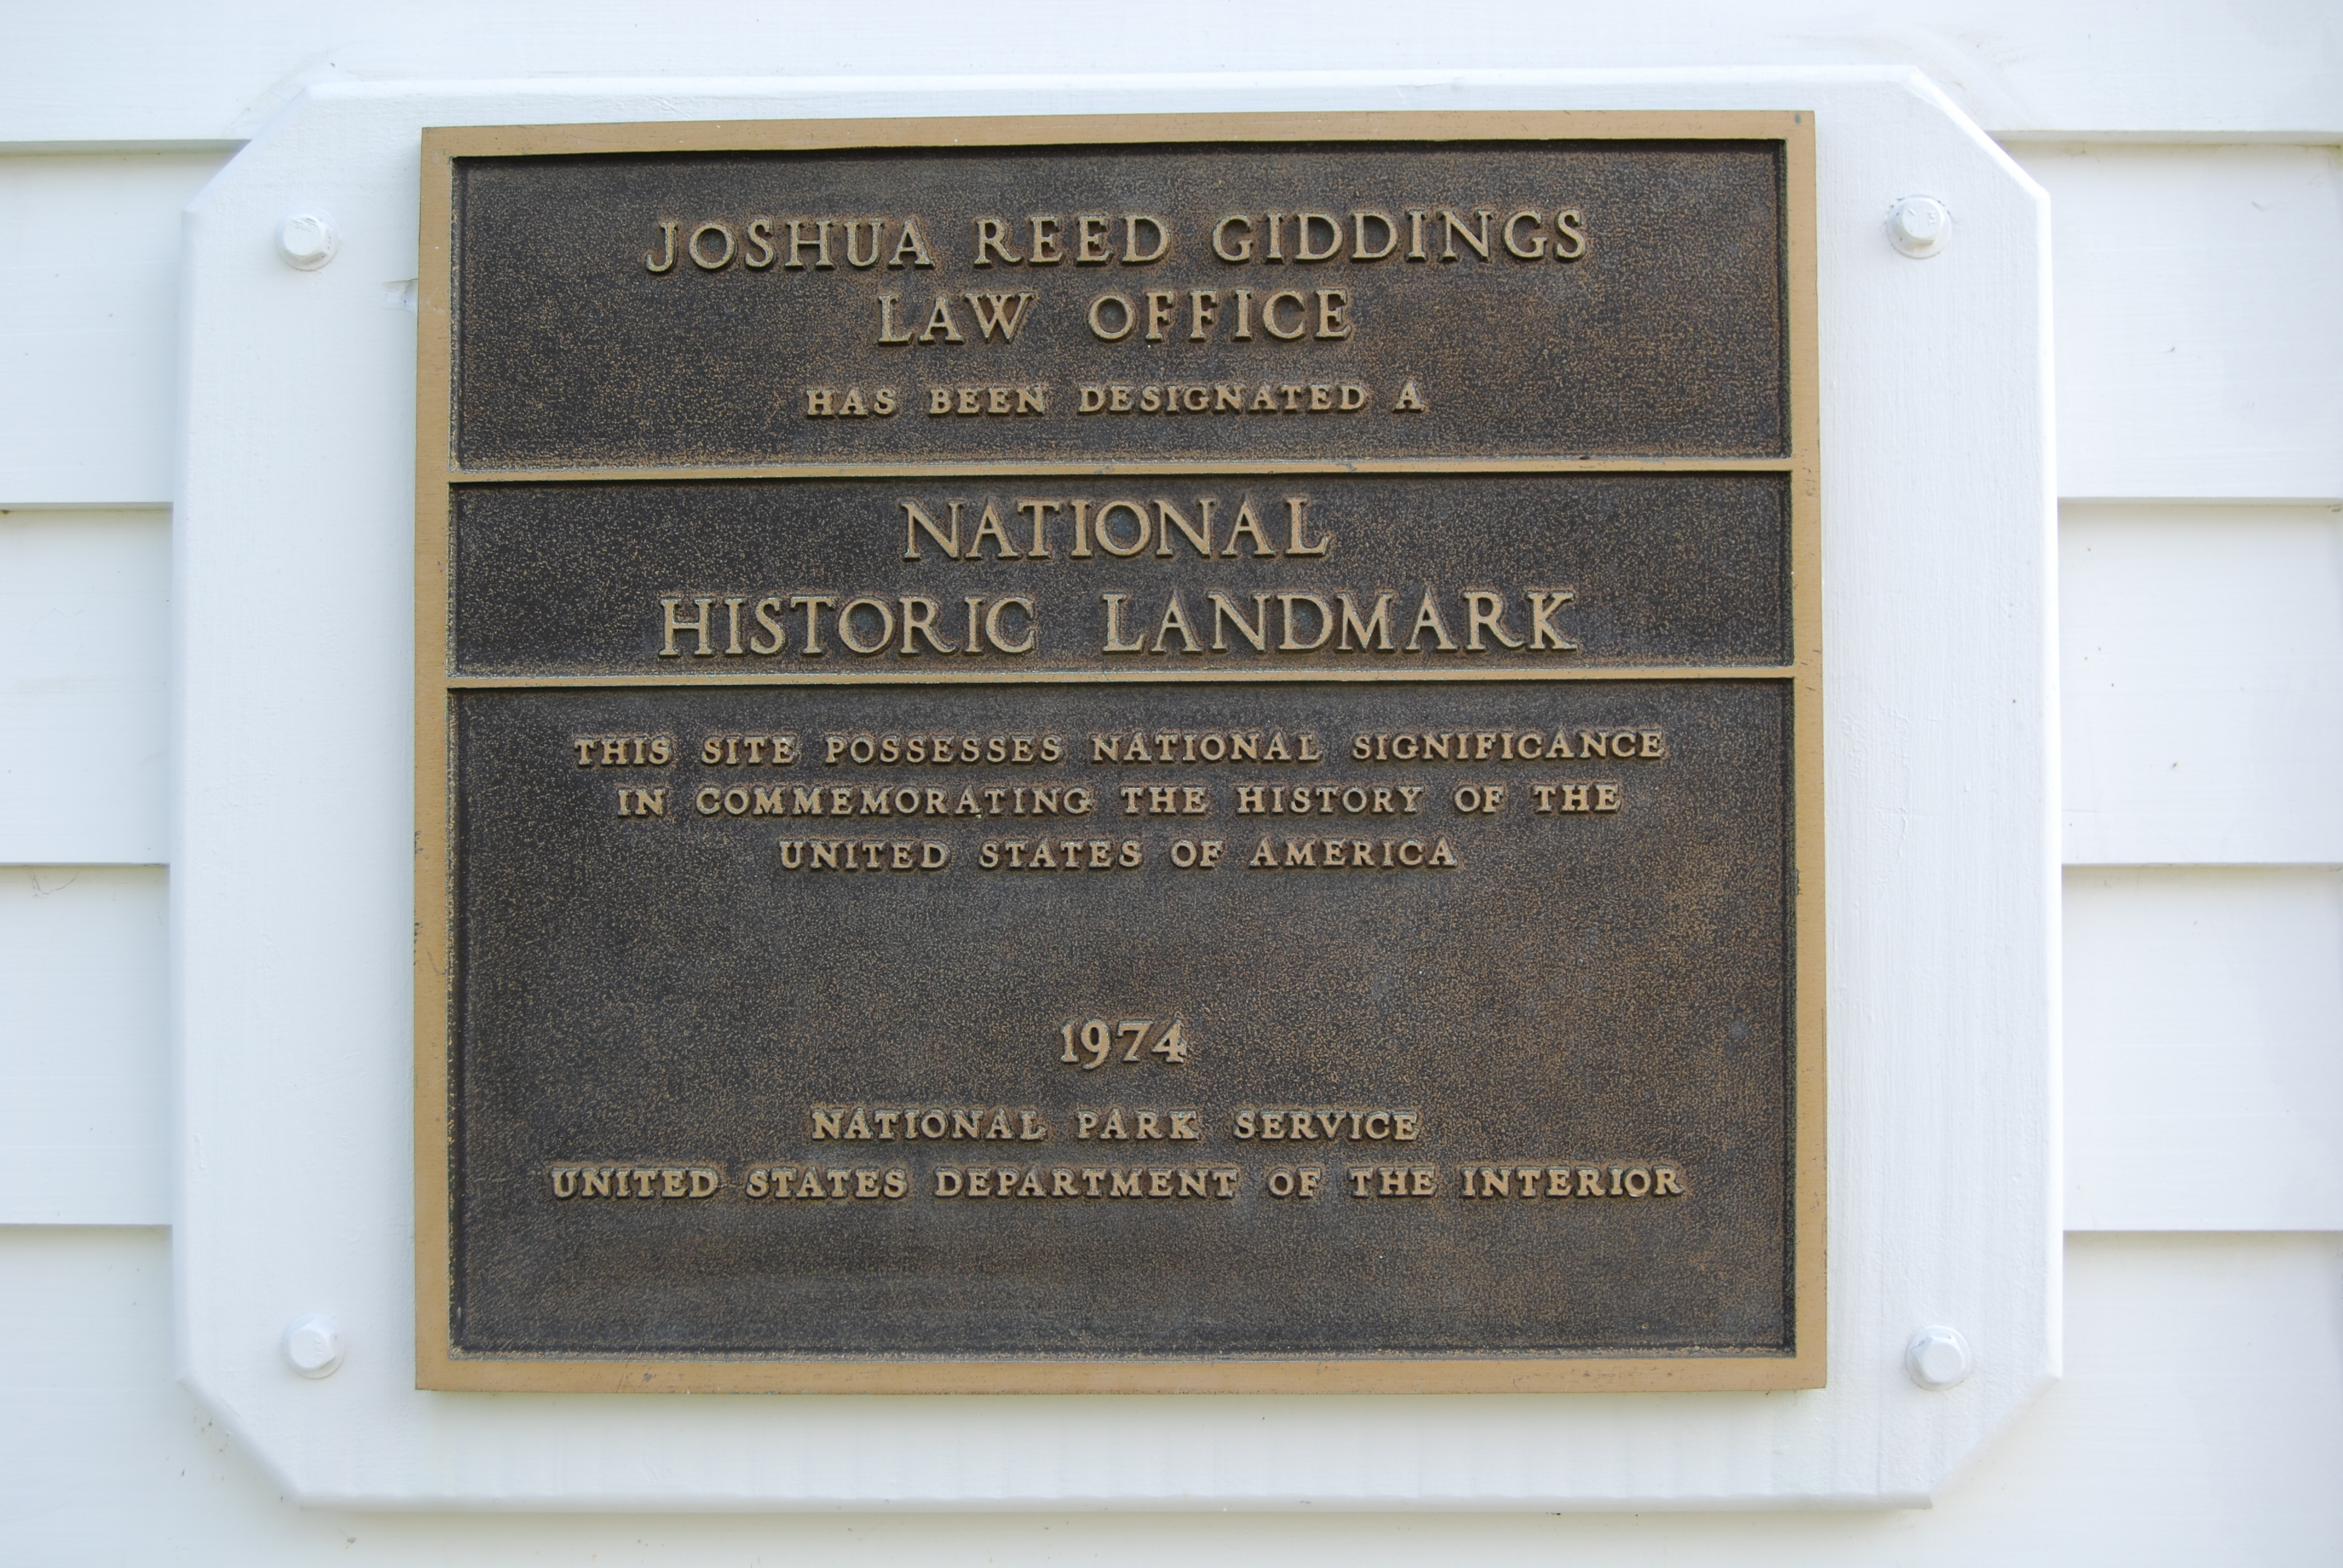 Joshua R. Giddings Law Office National Historic Landmark Marker